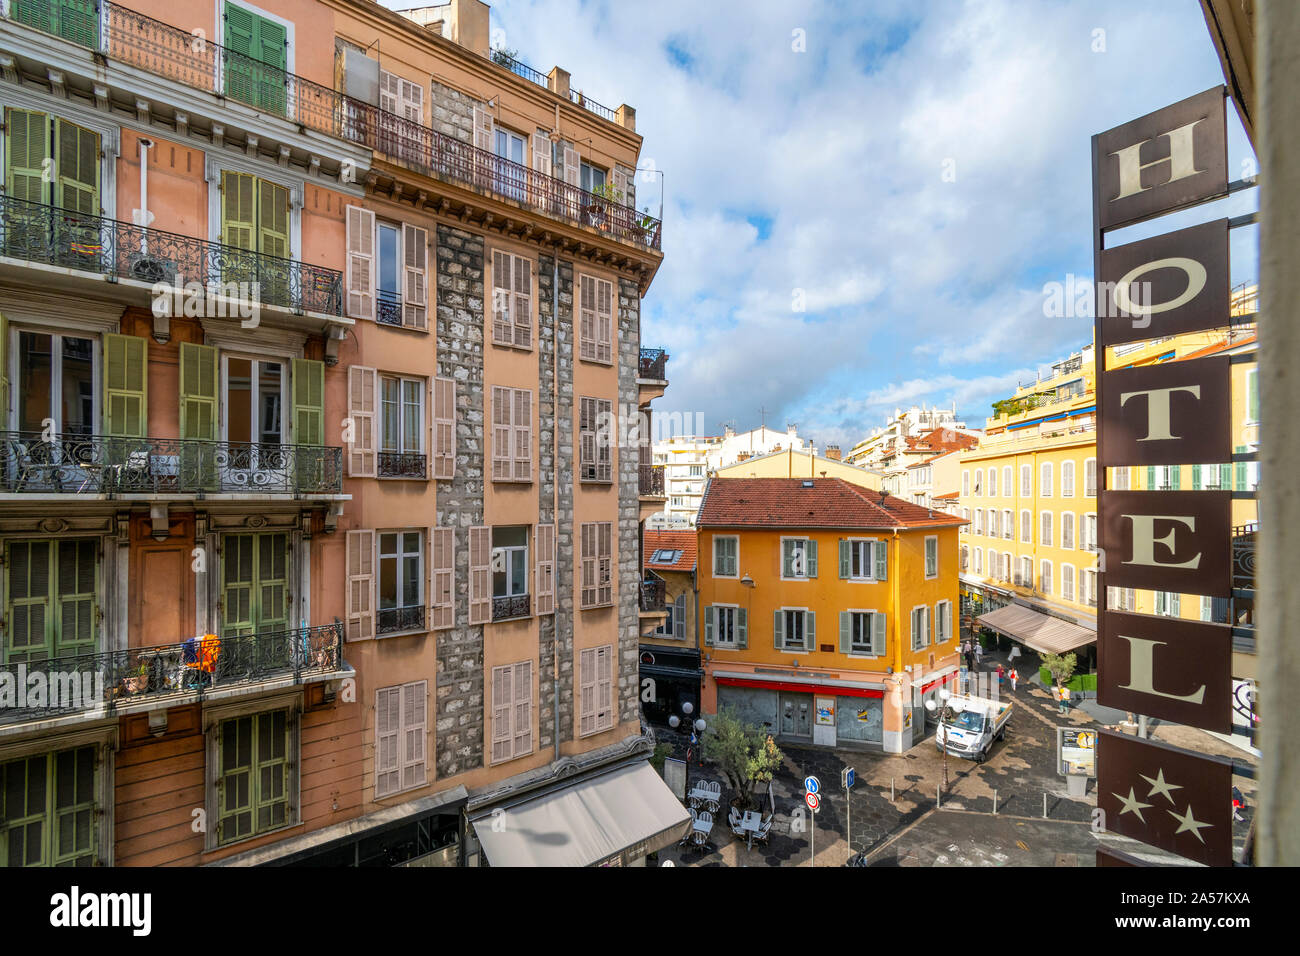 View from a hotel balcony overlooking the touristic urban center of Nice France on the French Riviera. Stock Photo